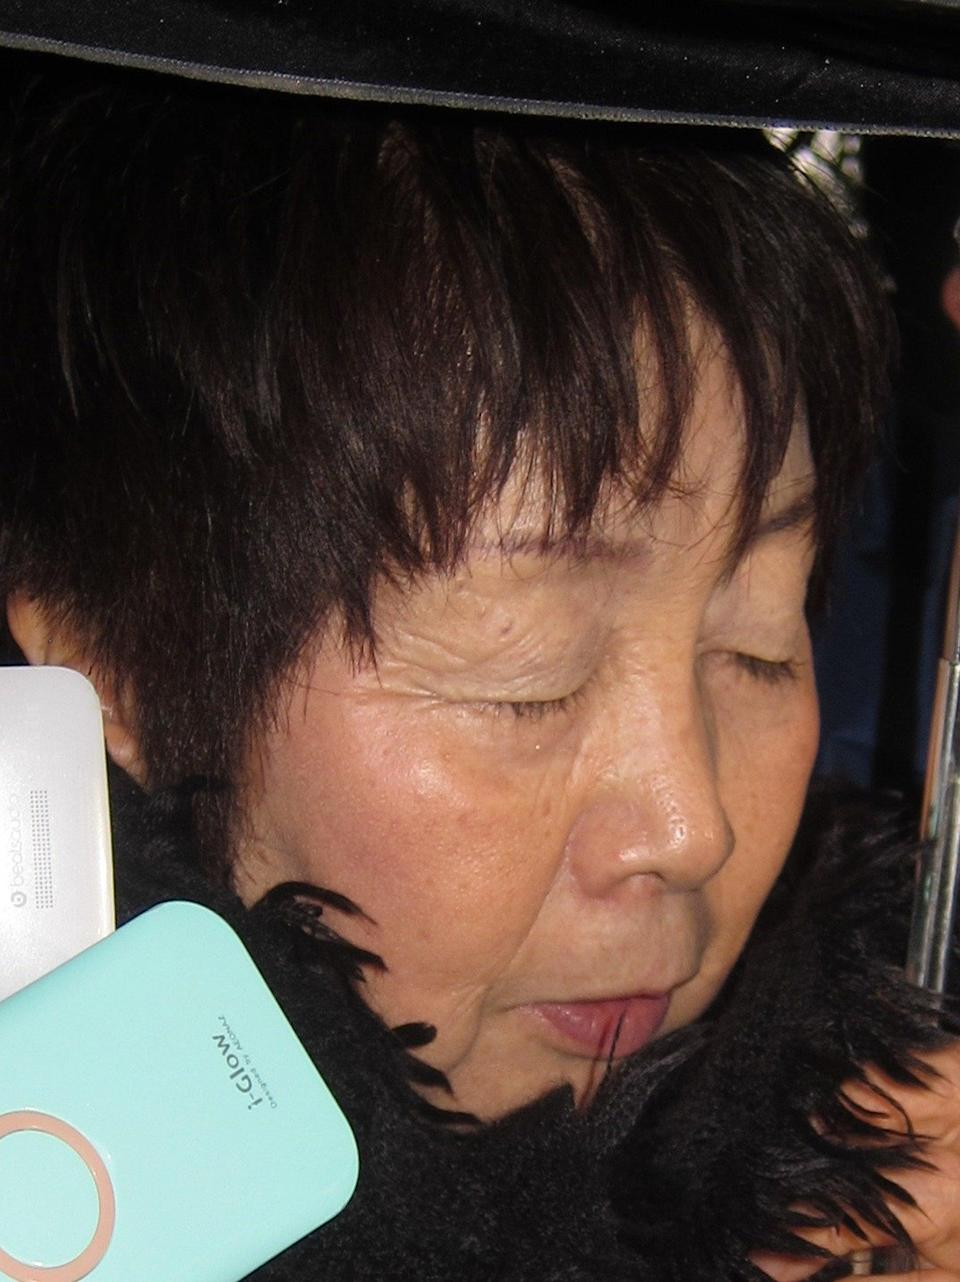 This picture taken on 13 March 2014 shows 67-year-old Japanese woman Chisako Kakehi, who was arrested in Kyoto on suspicion of poisoning her husband with cyanide in the latest 'Black Widow' case (AFP via Getty Images)